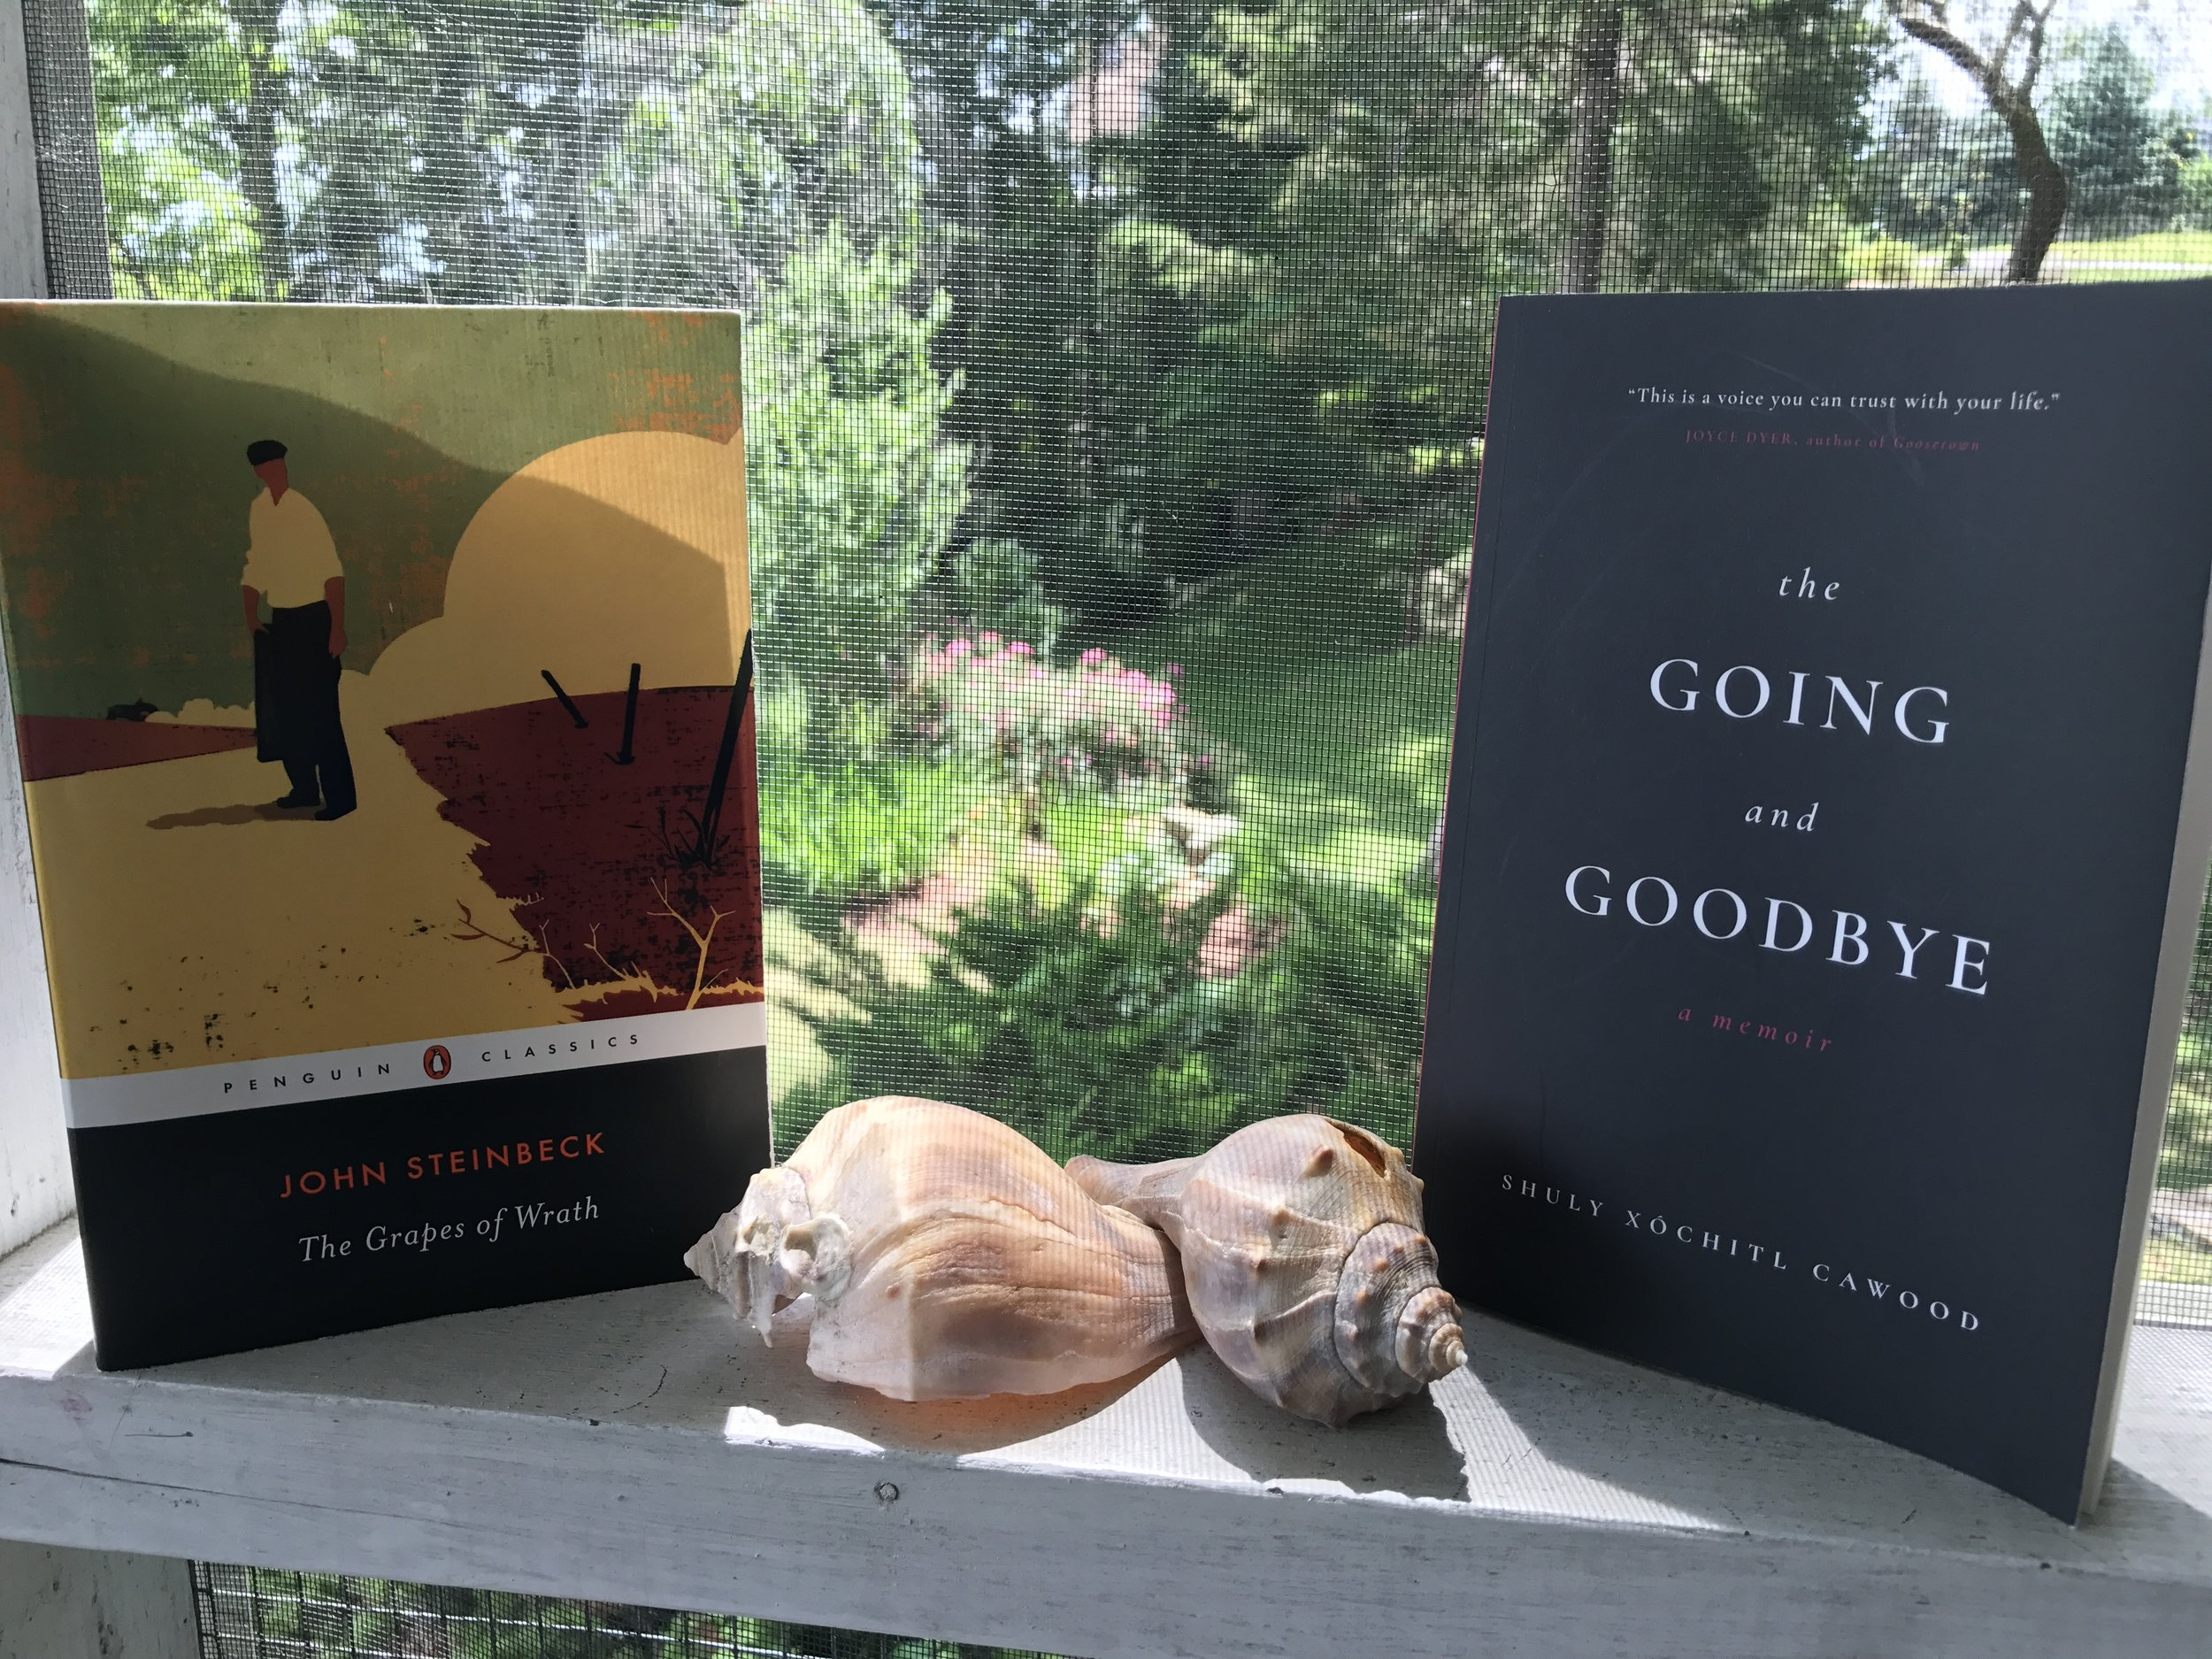 Coming in August... - Chris and Emily are doing a read along of the Grapes of Wrath by John Steinbeck.The next author spotlight with Shuly Cawood to discuss her new memoir: The Going and Goodbye.